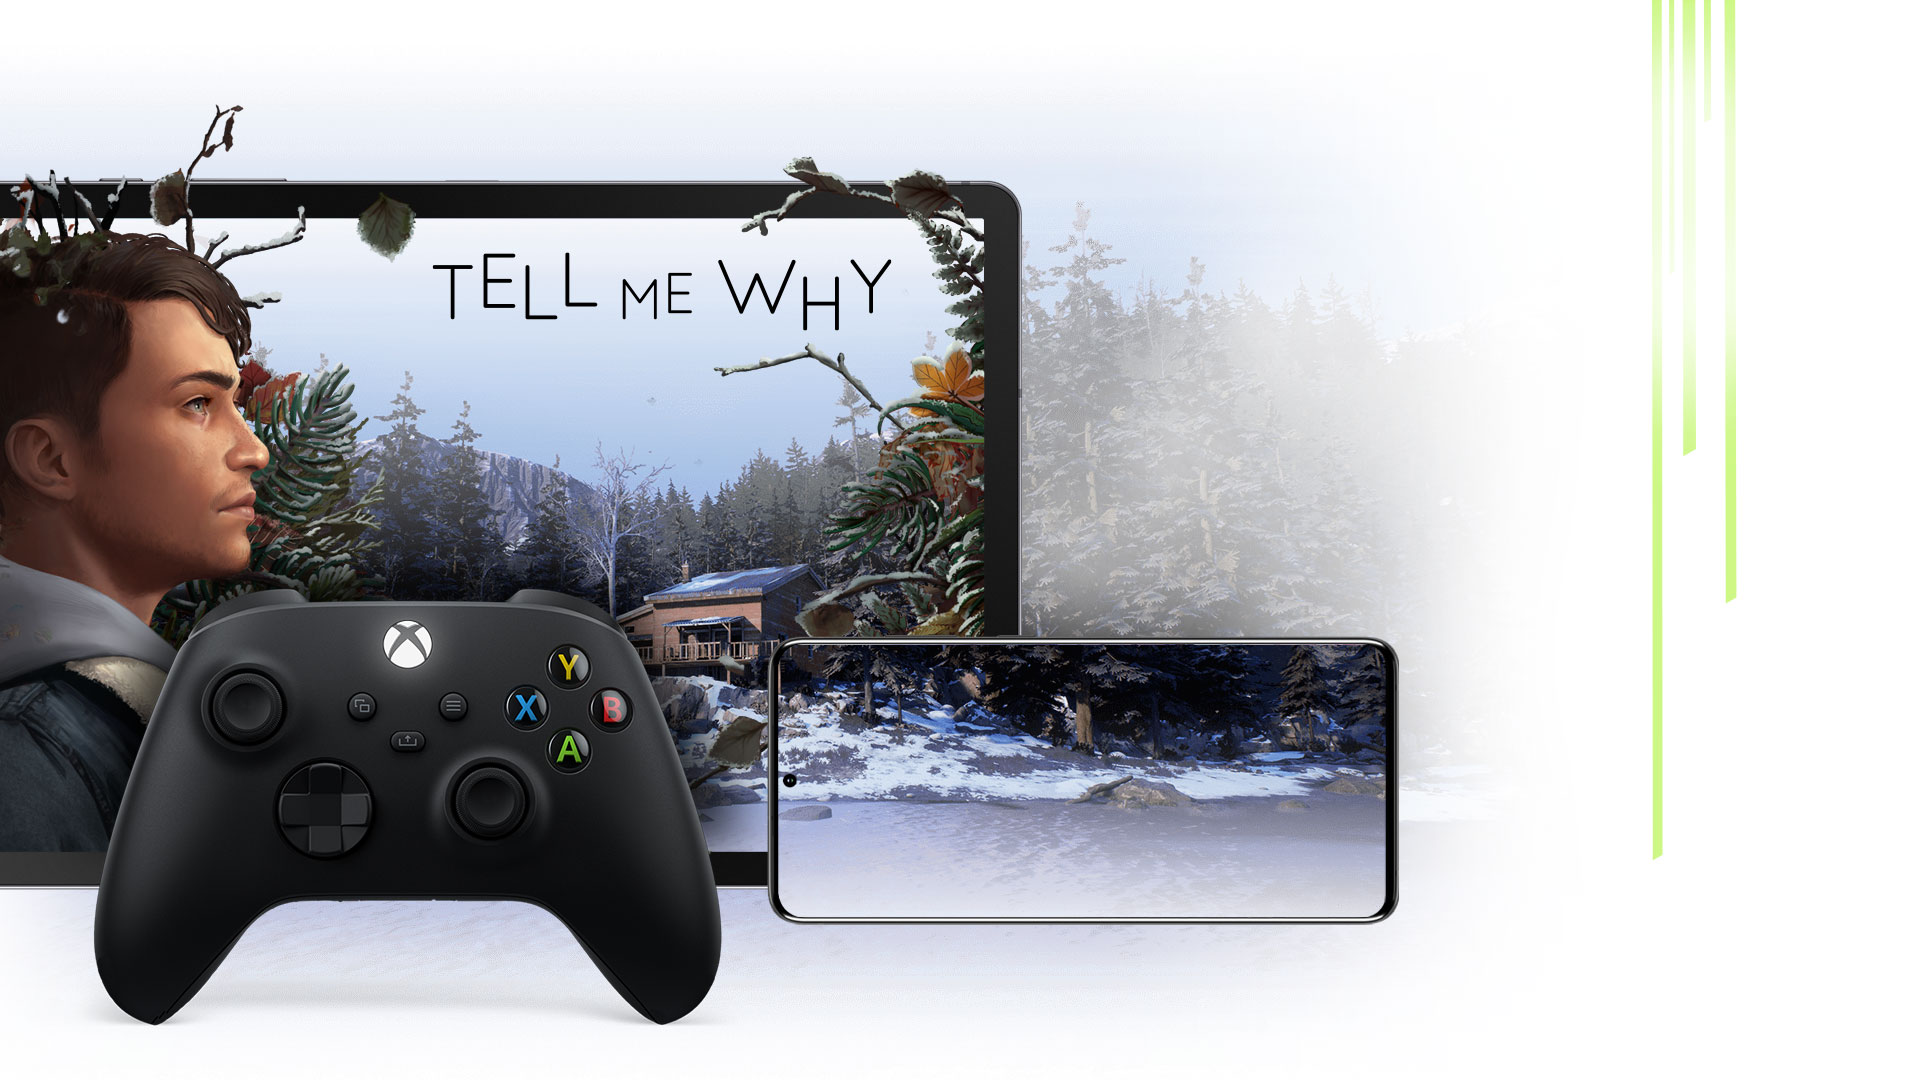 An Xbox Wireless Controller with a mobile phone and tablet showing Tell Me Why